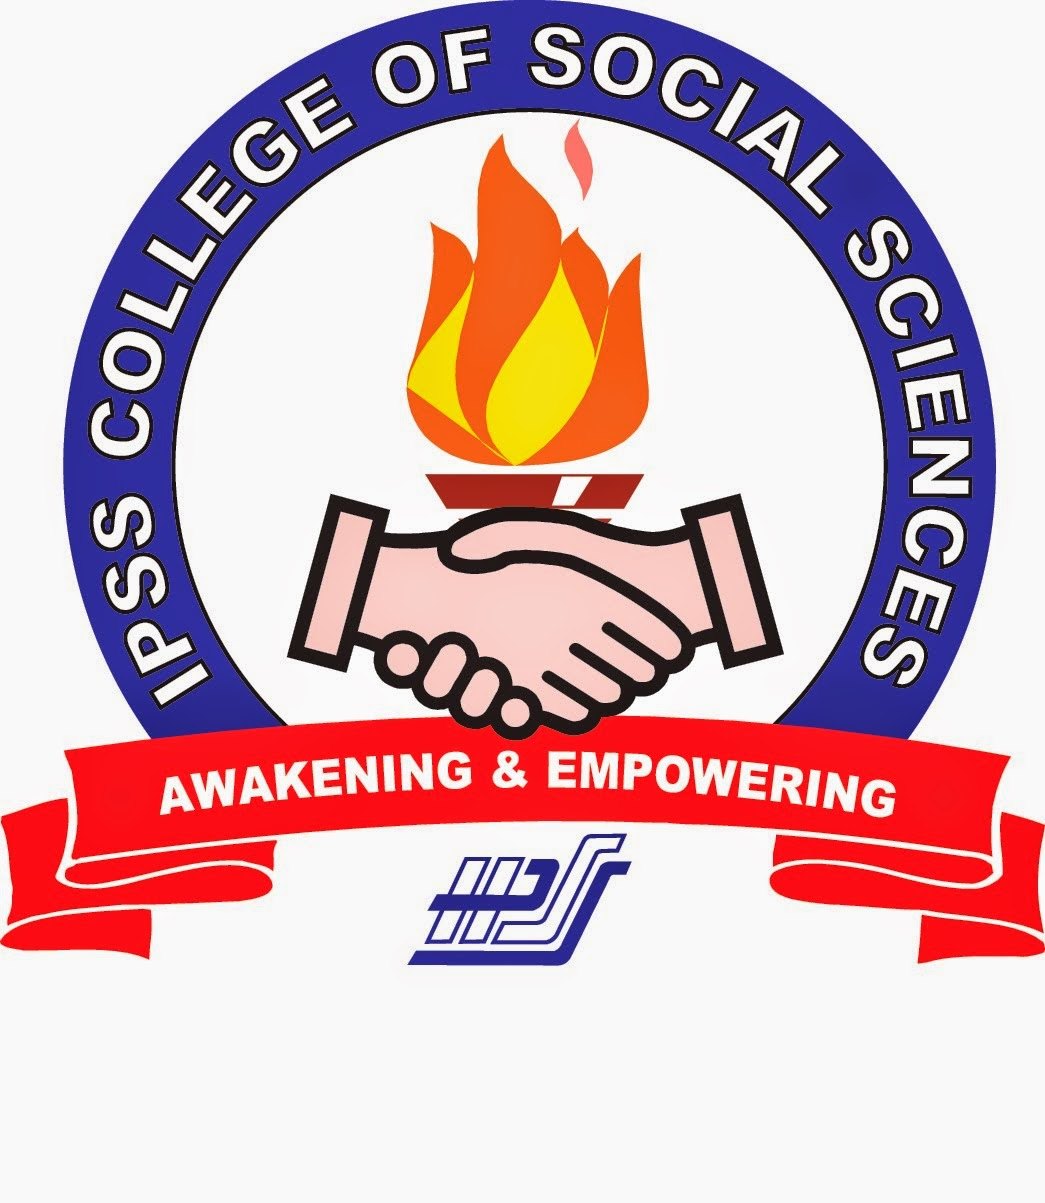 IPSS College of Social Sciences, Kollam